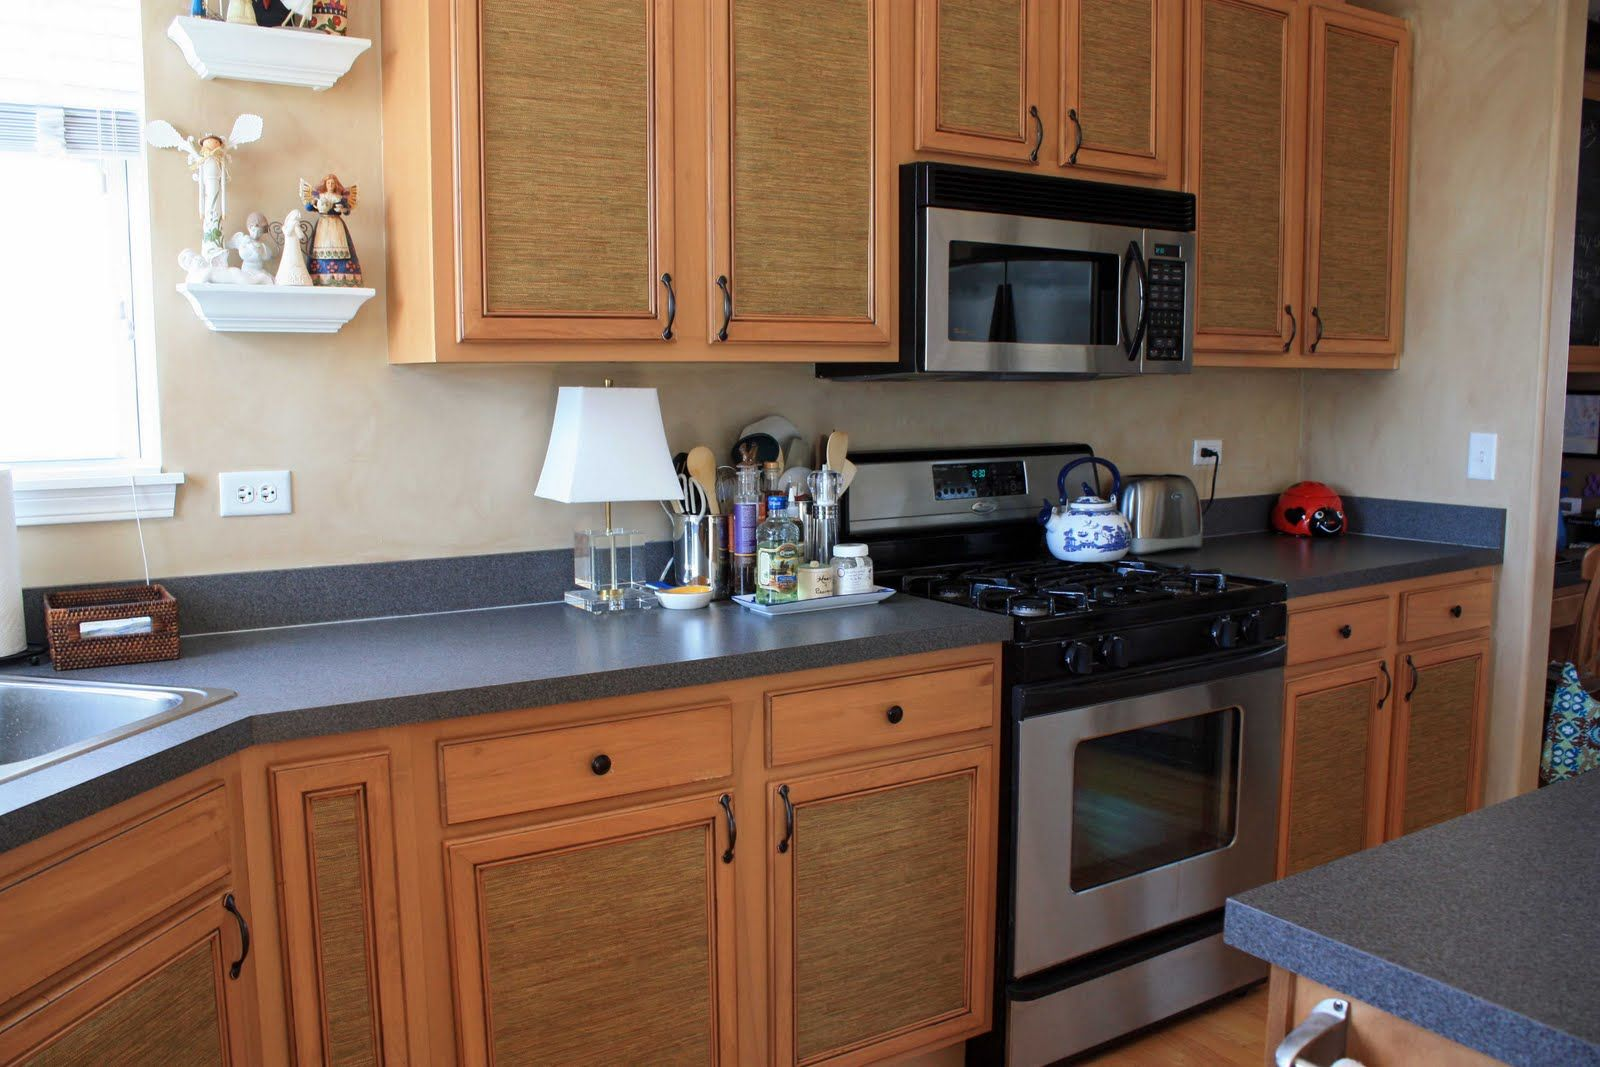 Transforming Home 5 Kitchen Cabinet Update Cabinet Ideas